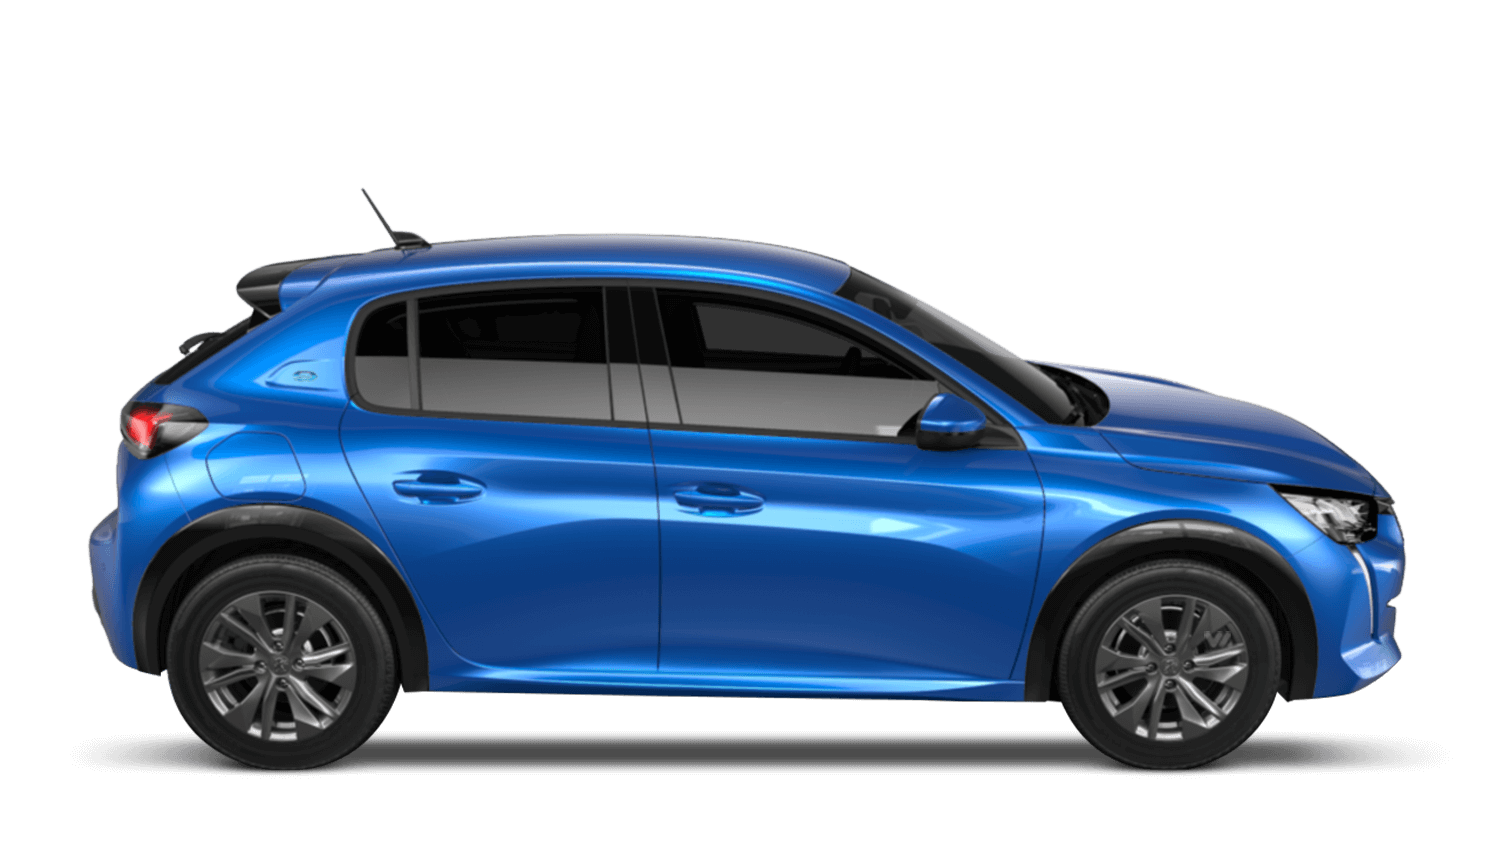 Vertigo Blue All-new Peugeot e-208